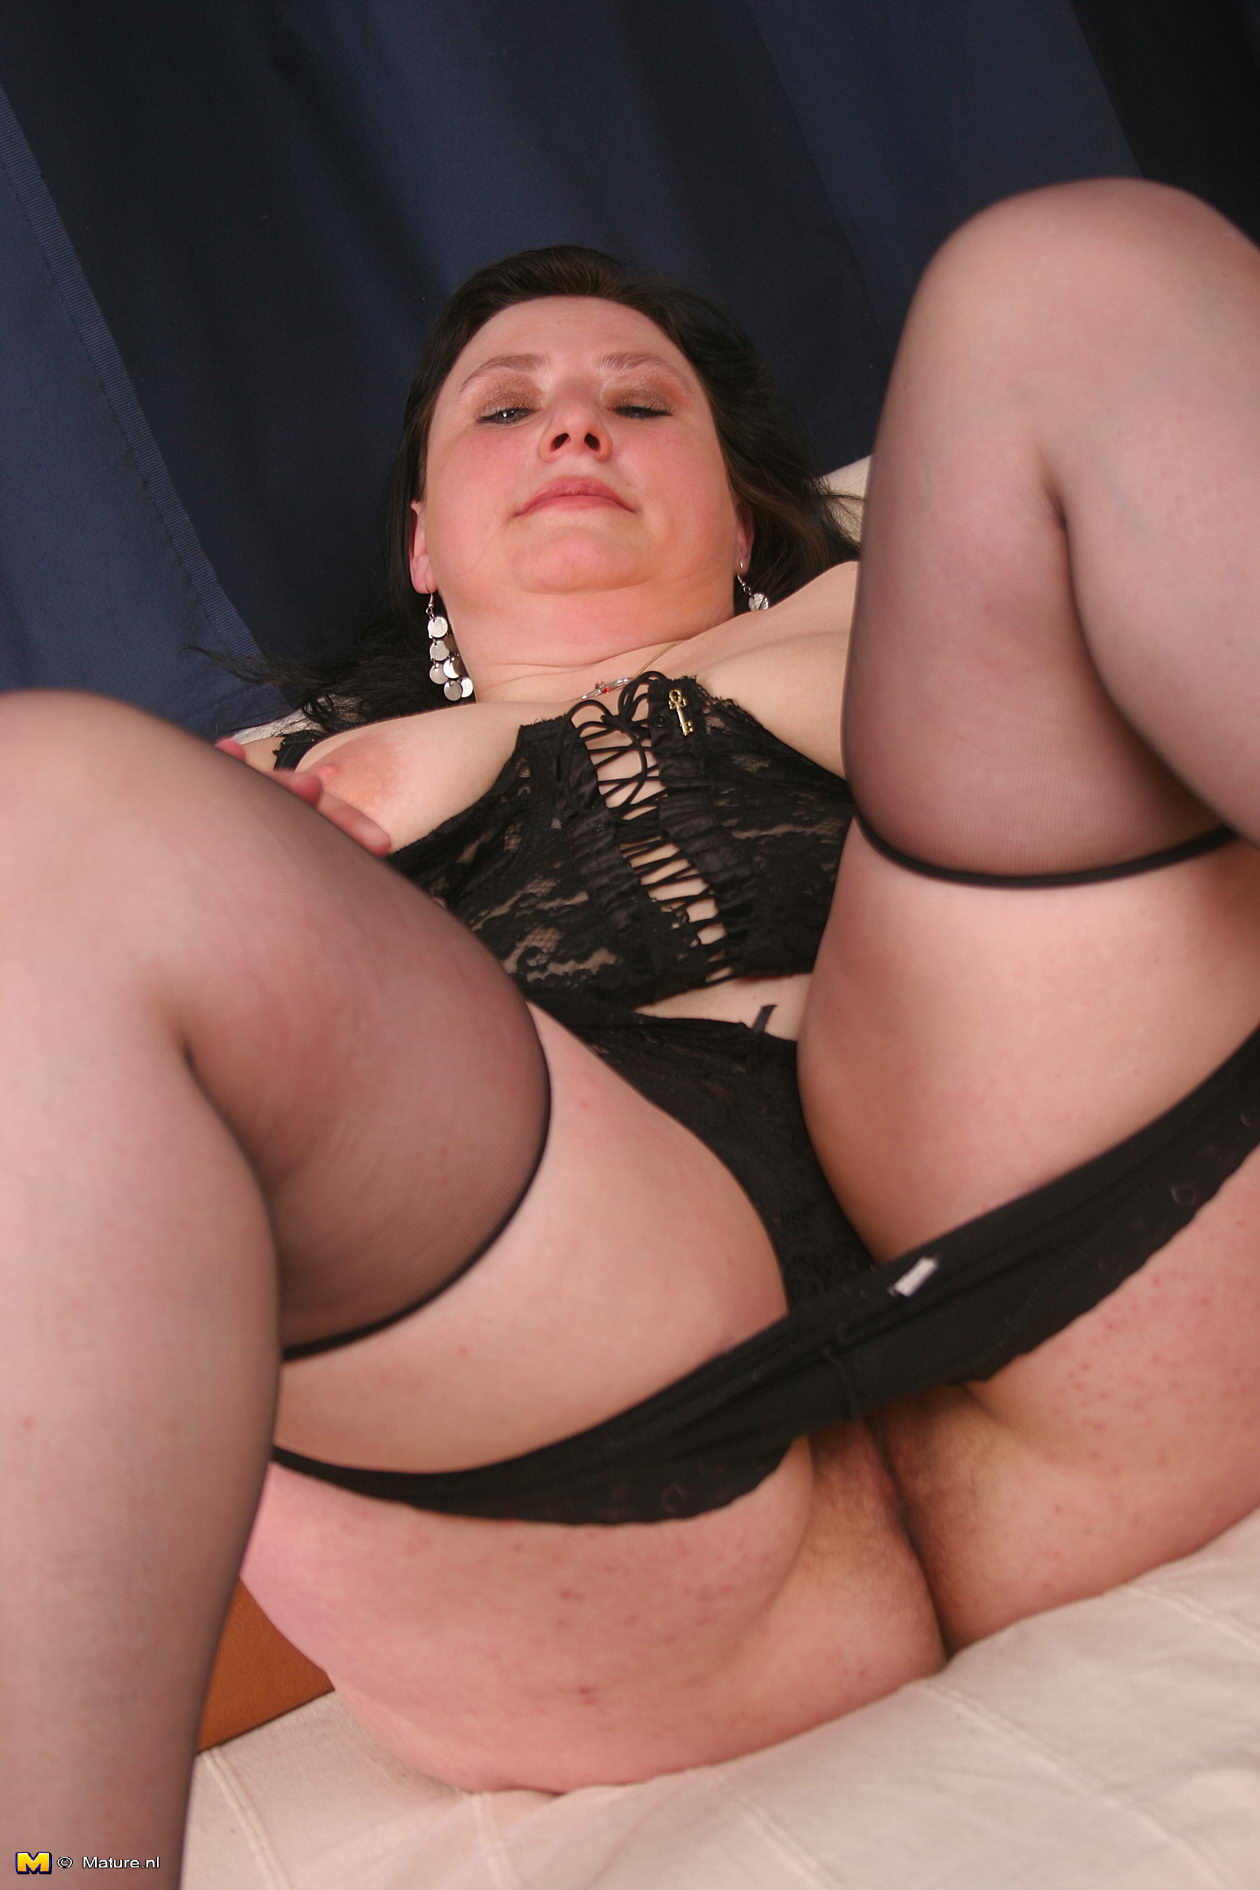 mature nl spreading hd squeezed them brutally